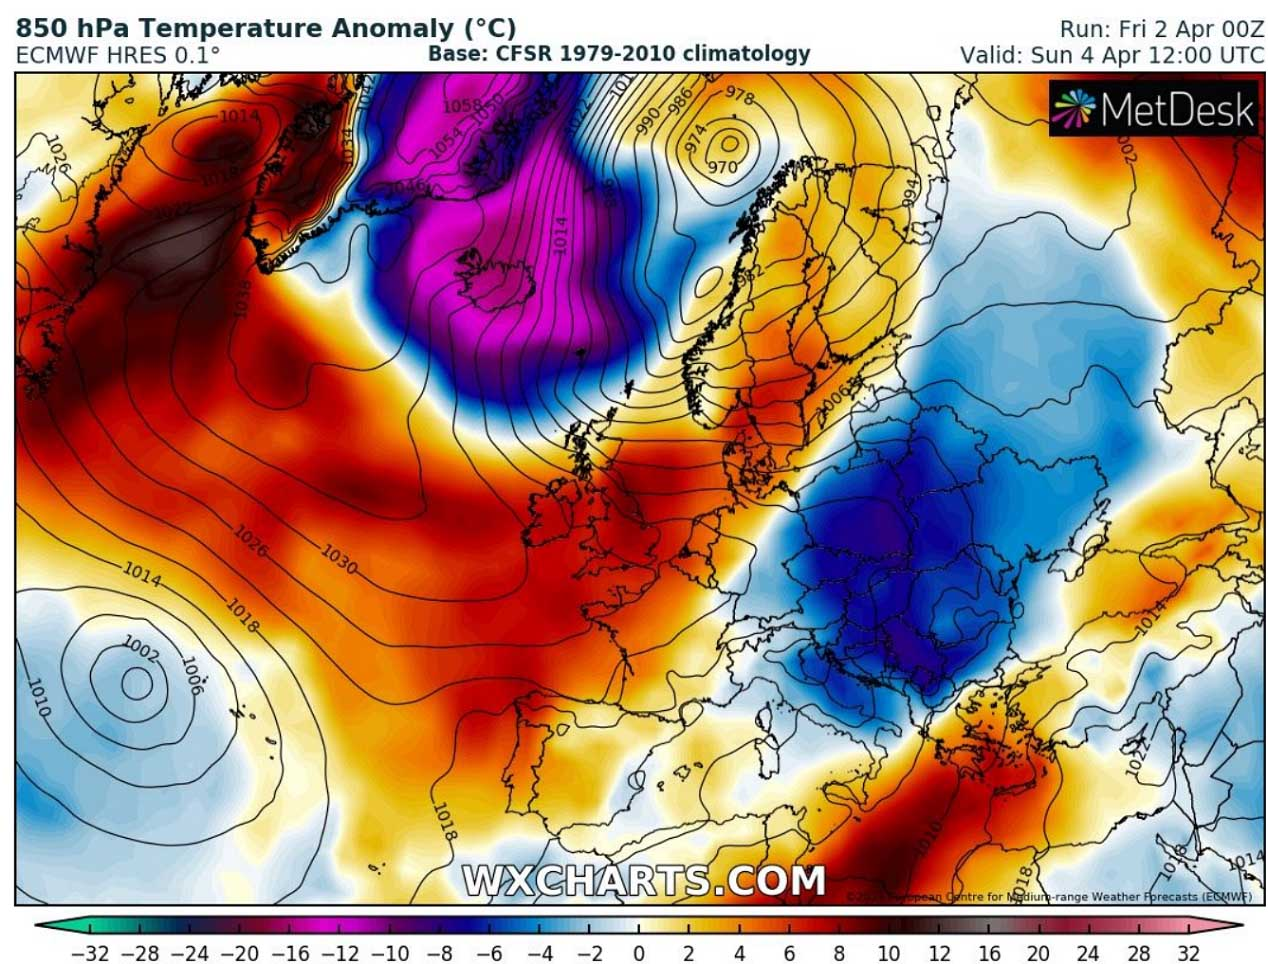 historic-cold-blast-europe-snow-easter-sunday-temperature